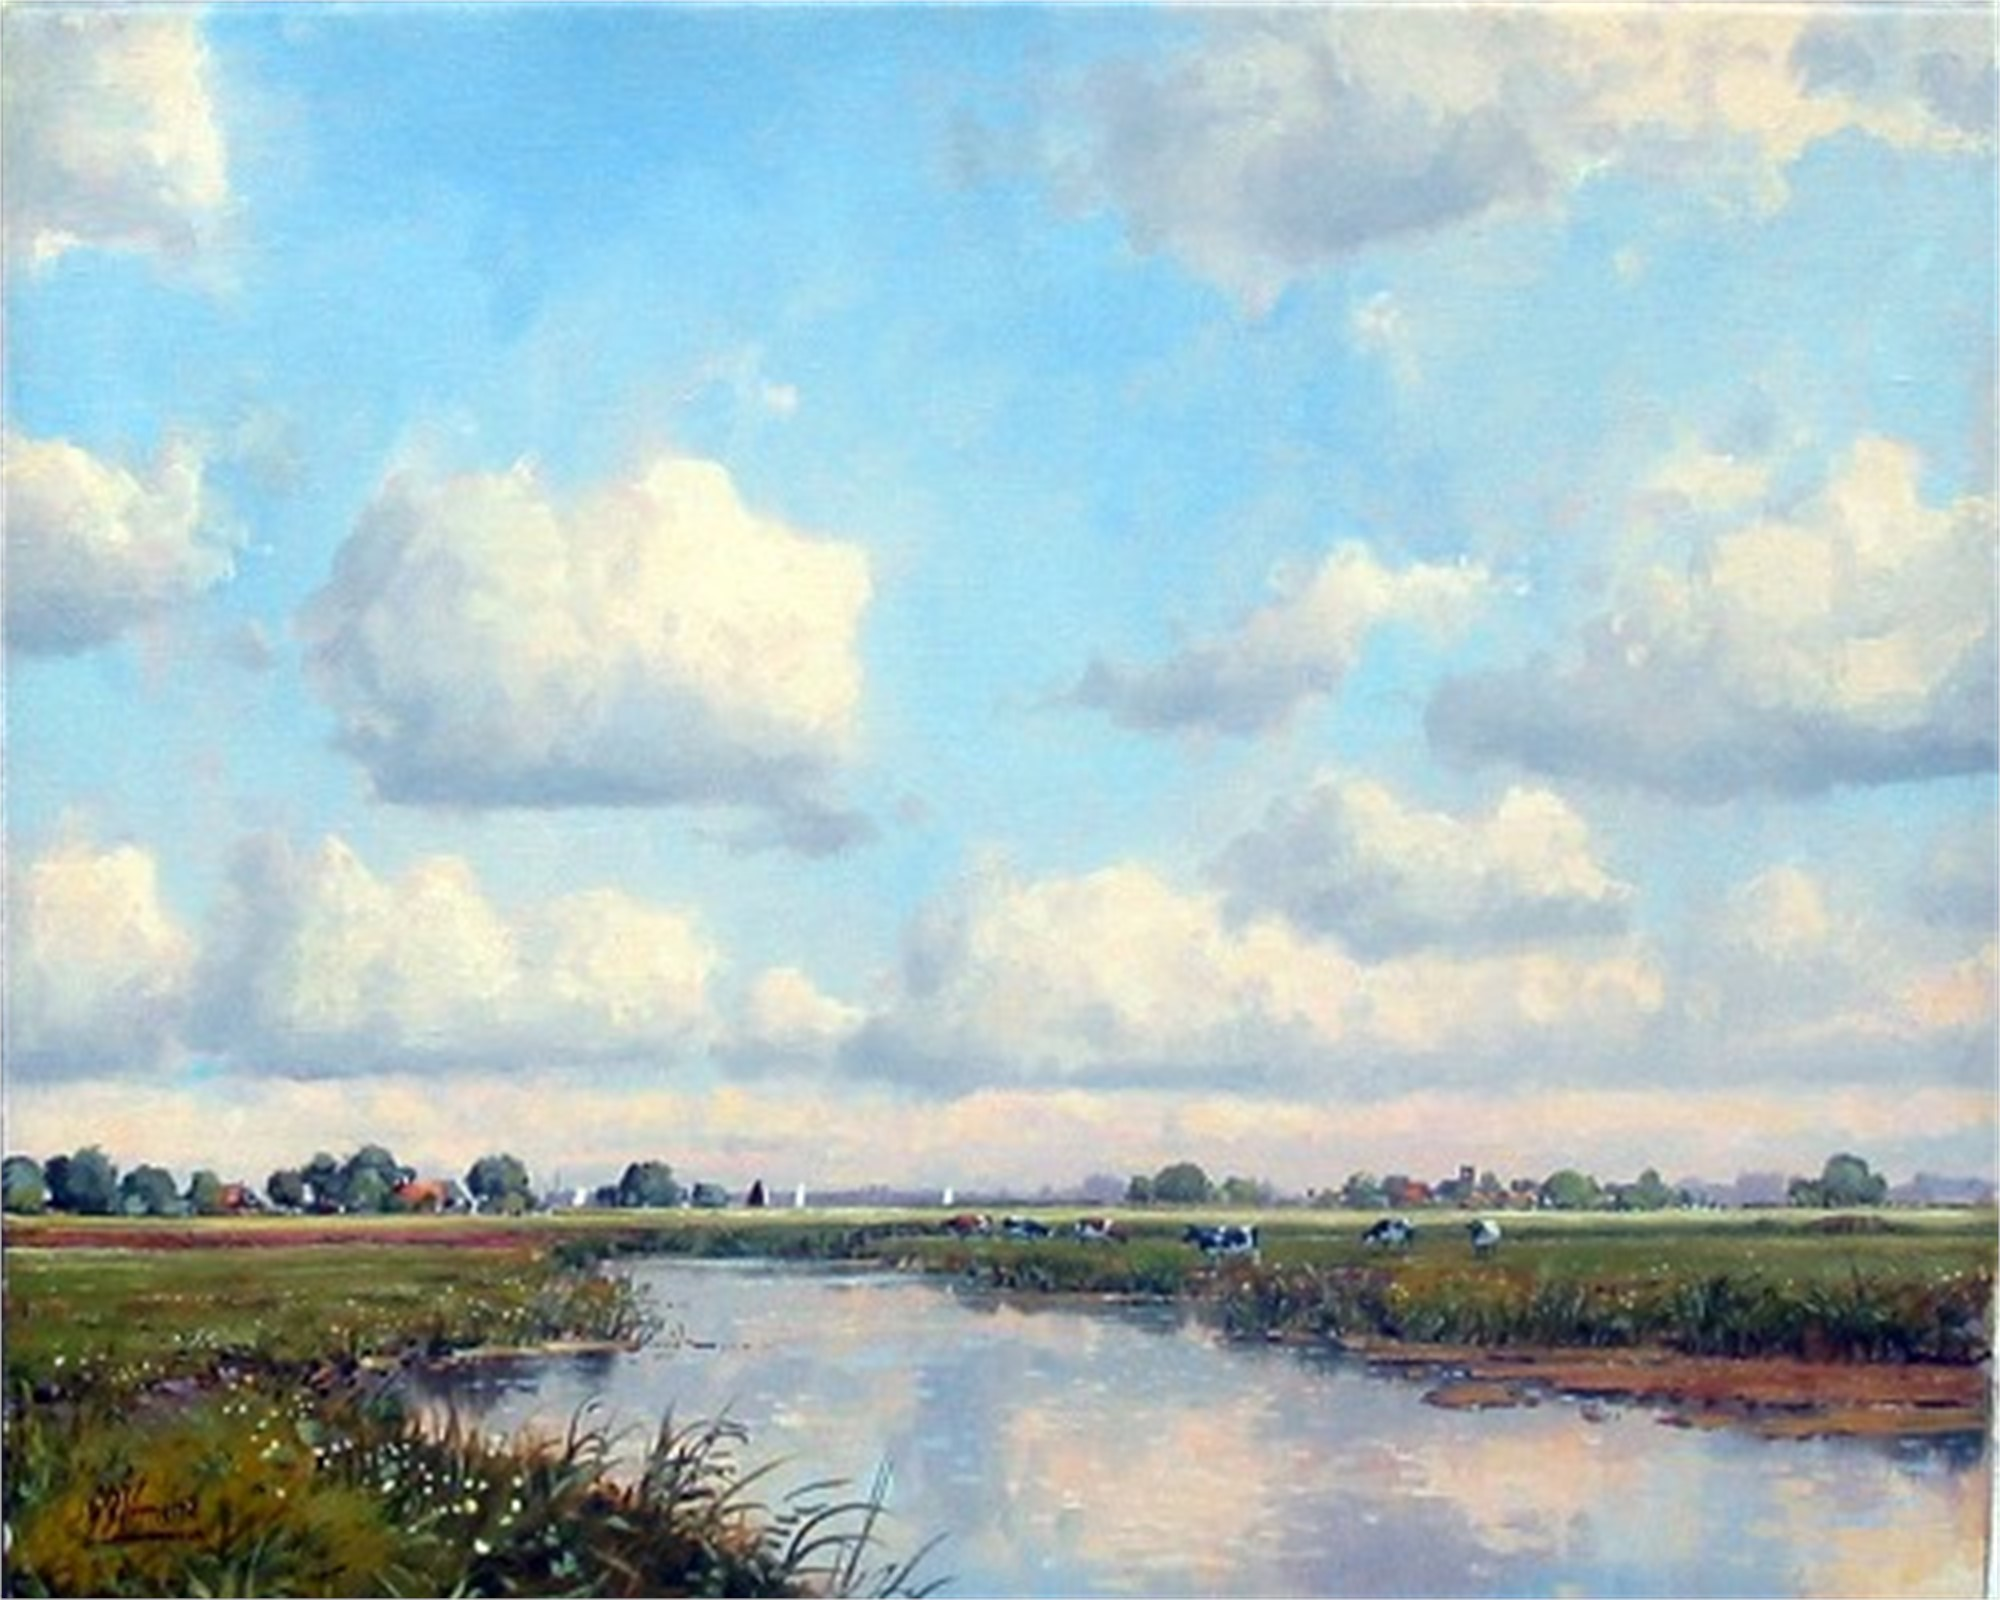 HIGHWAY OF HOLLAND by VEENSTRA